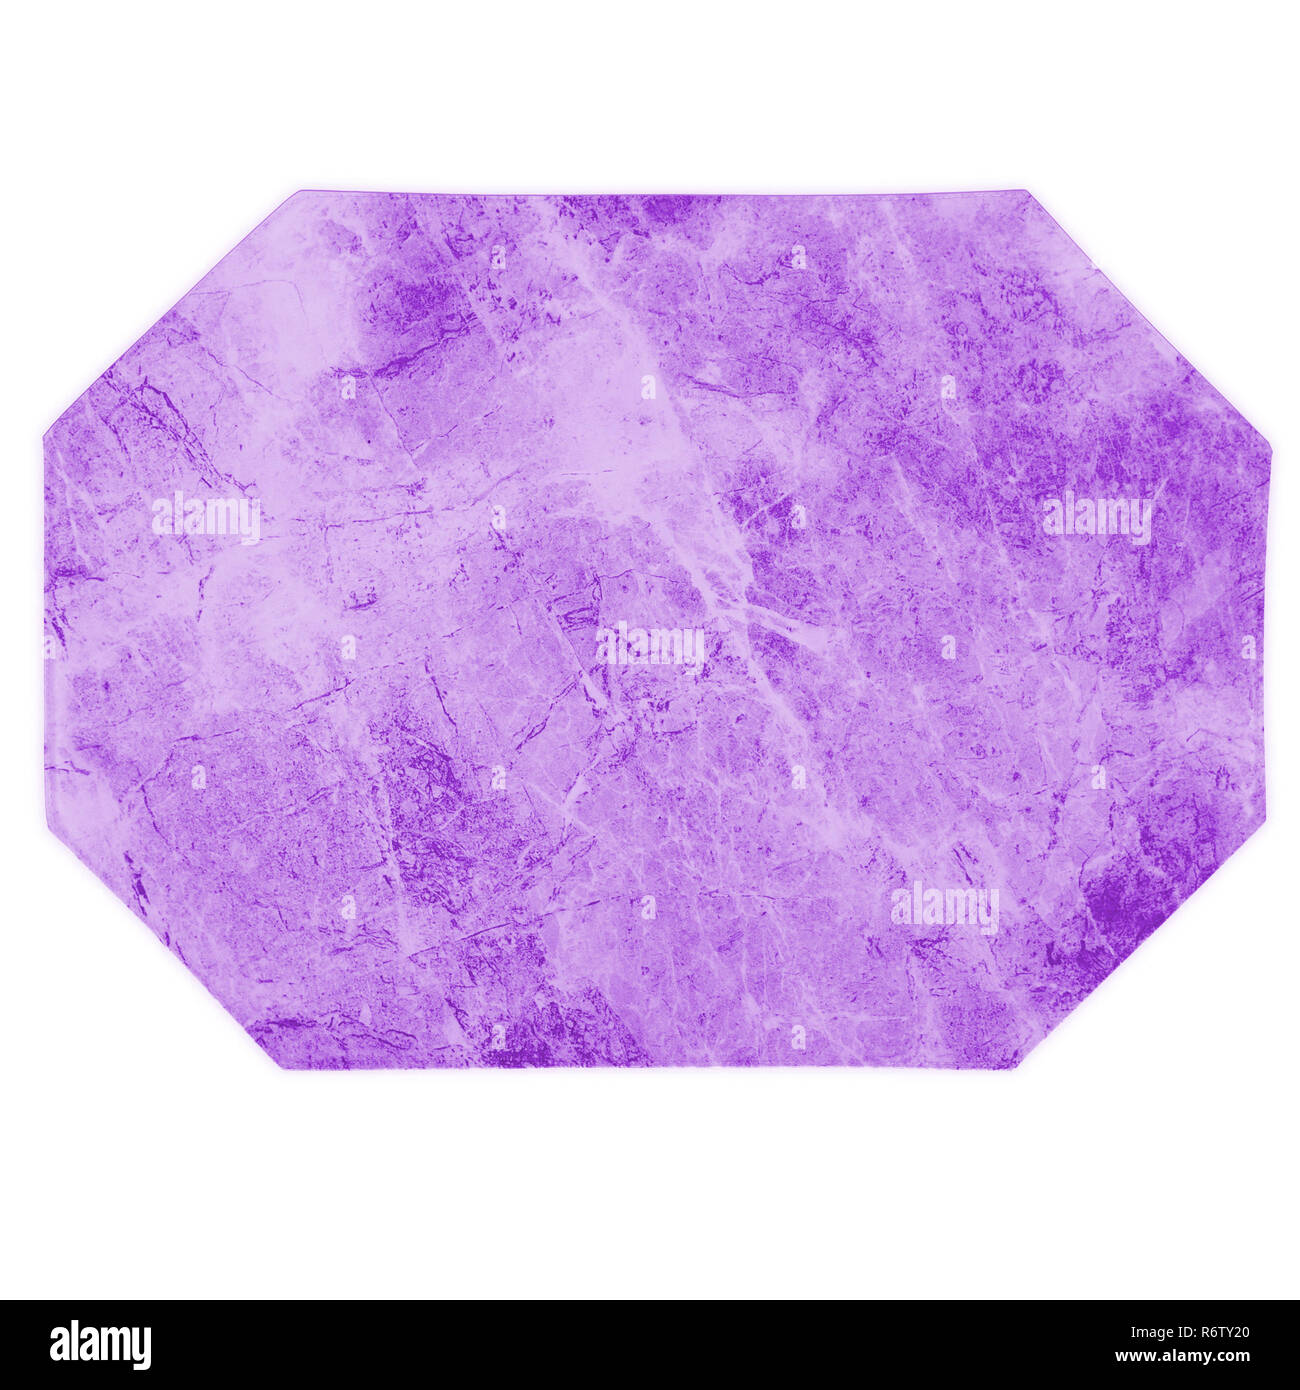 Isolated Marble Octagon Shaped Purple Kitchen Place Mat On White Background Stock Photo Alamy